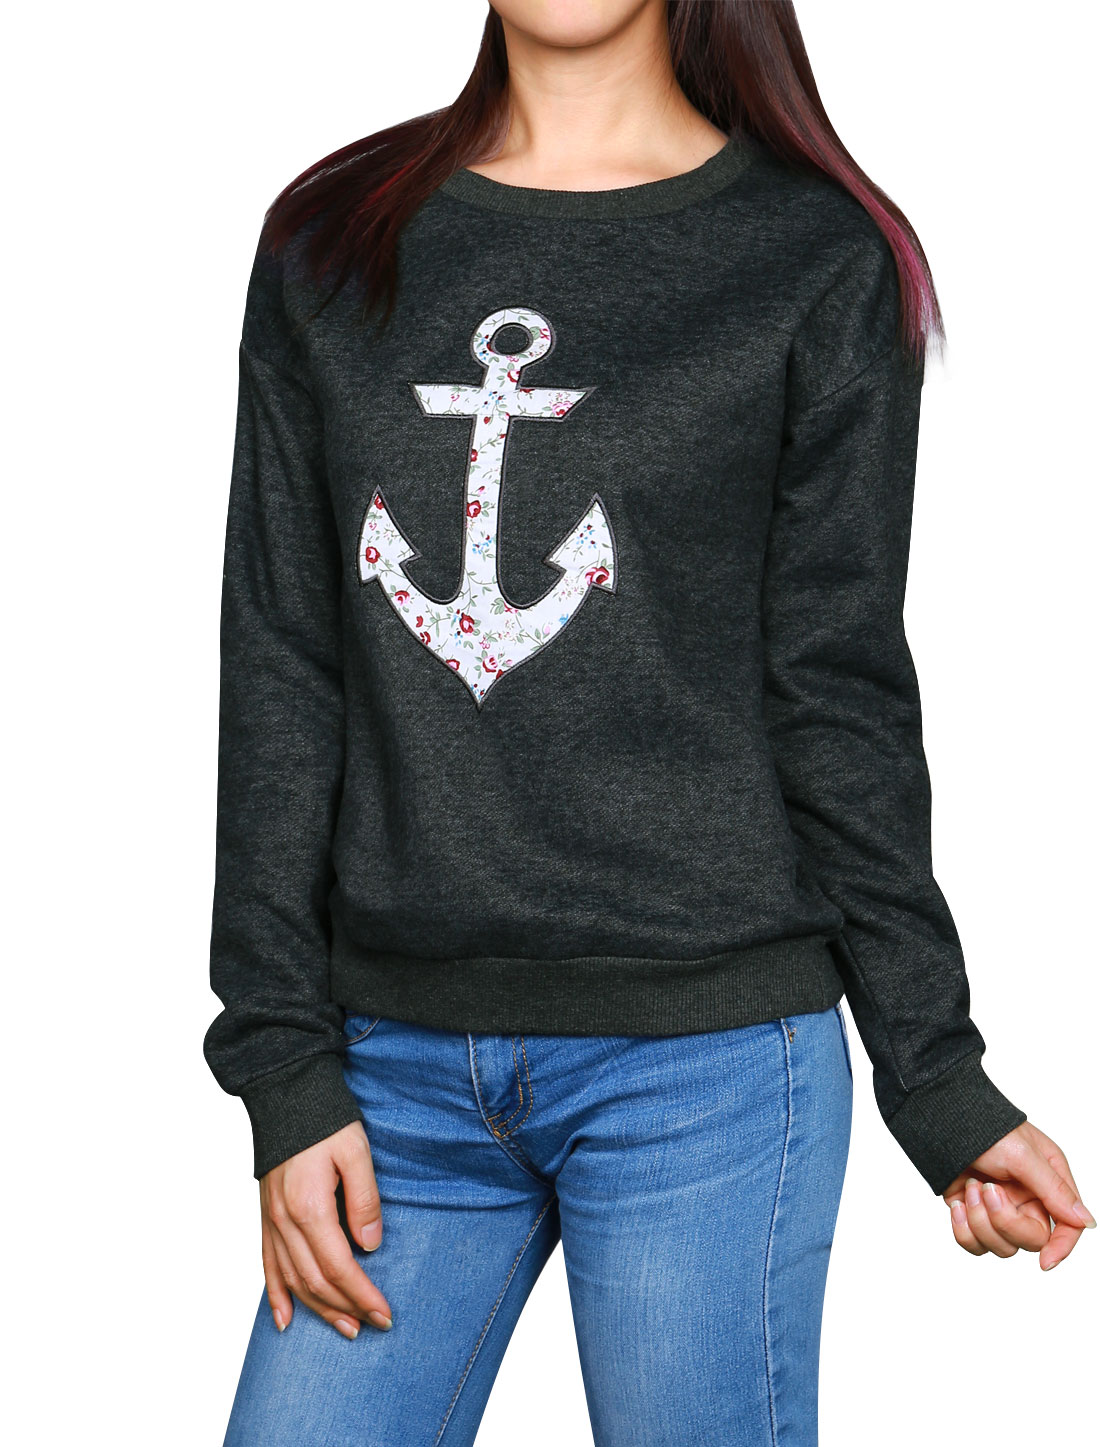 Woman Floral Anchor Applique Crew Neck Soft Lined Sweatshirt Gray XS